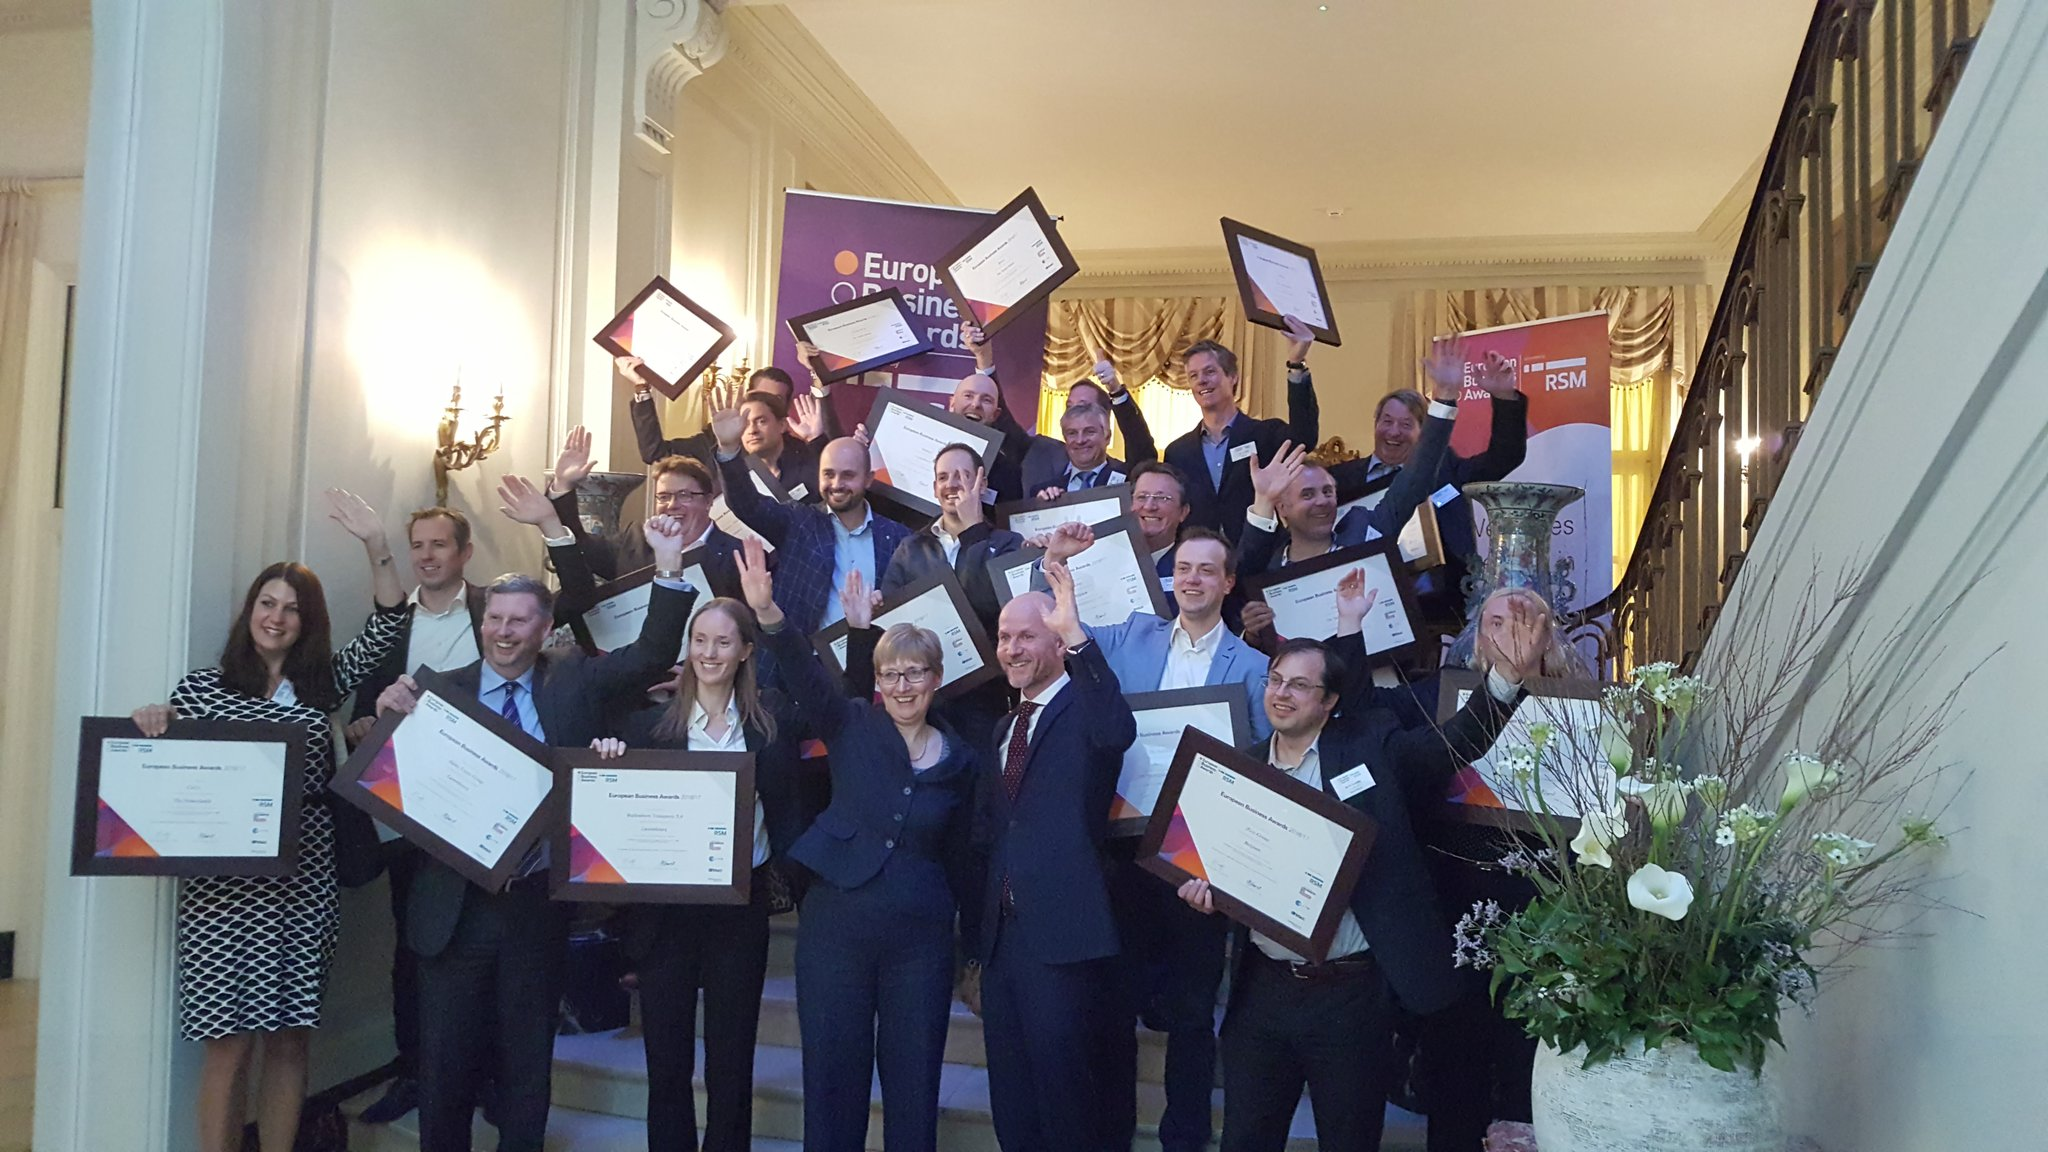 Benelux National Champions - European Business Awards 2016/17